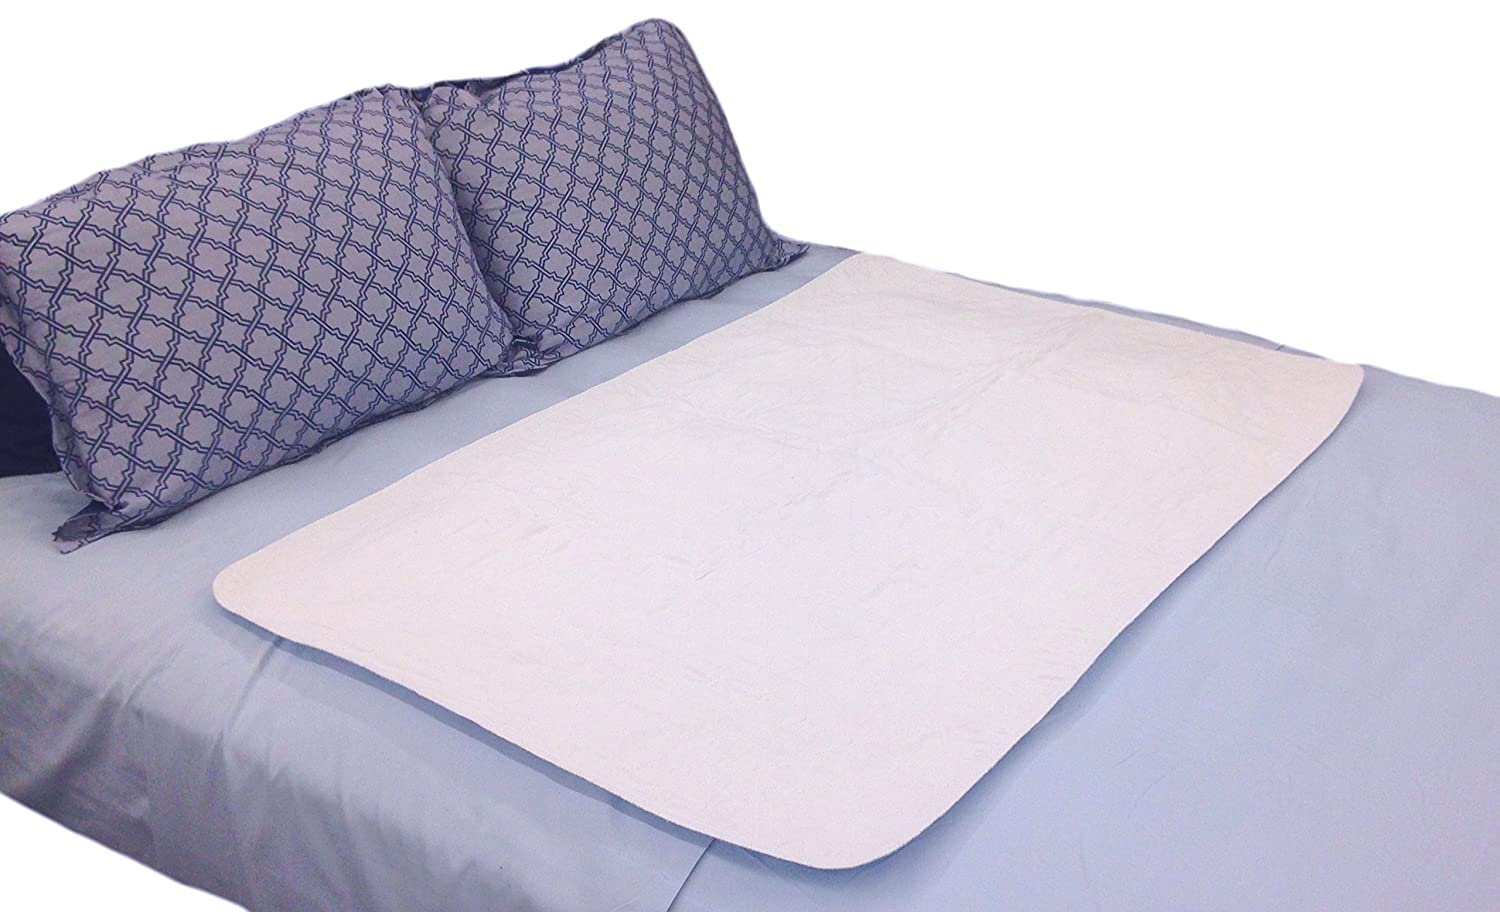 amazon com extra large premium waterproof bed pad 36 x 60 in